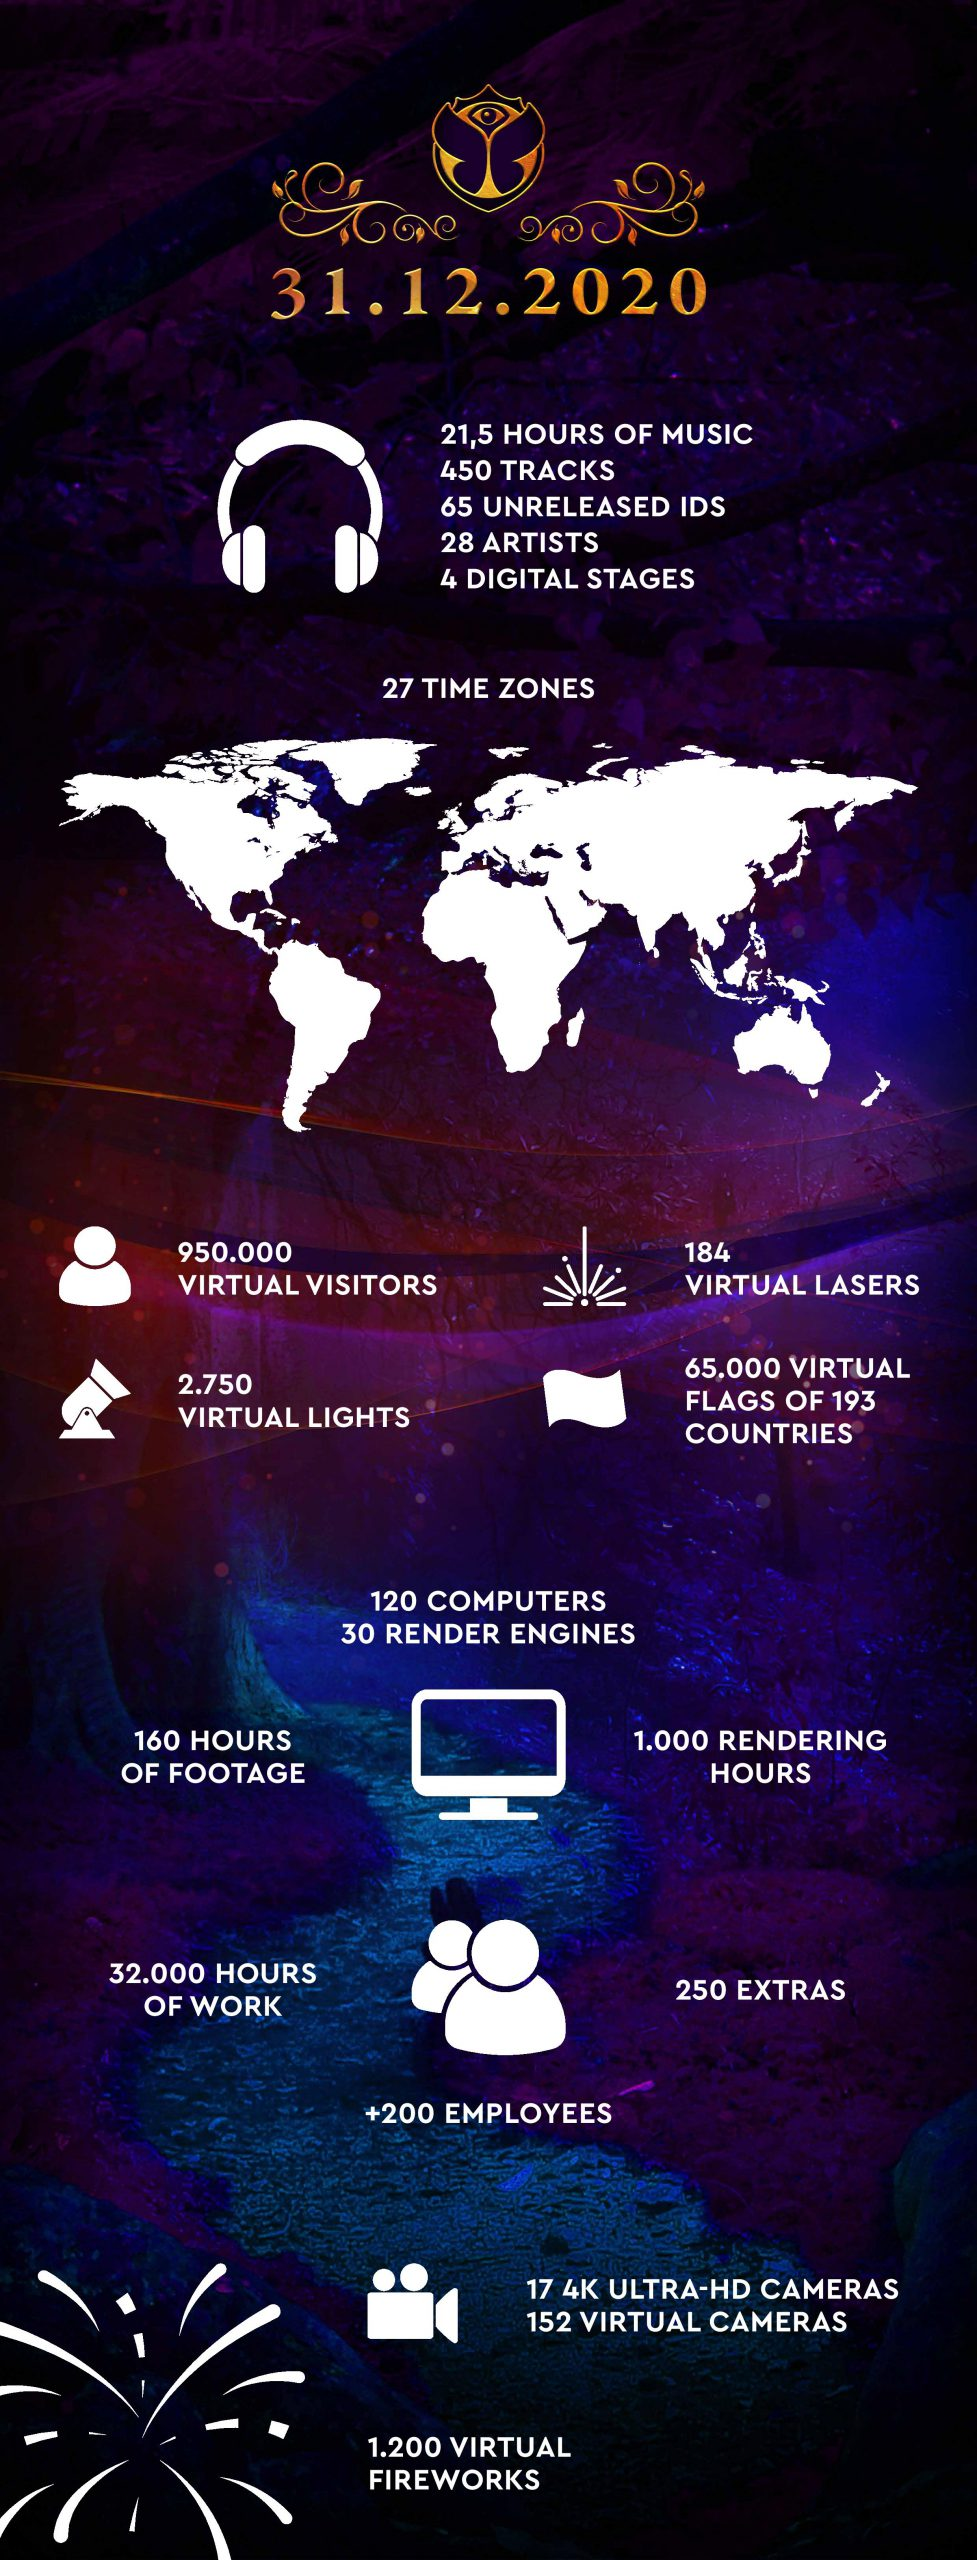 Tomorrowland 31.12.2020 - Infographic